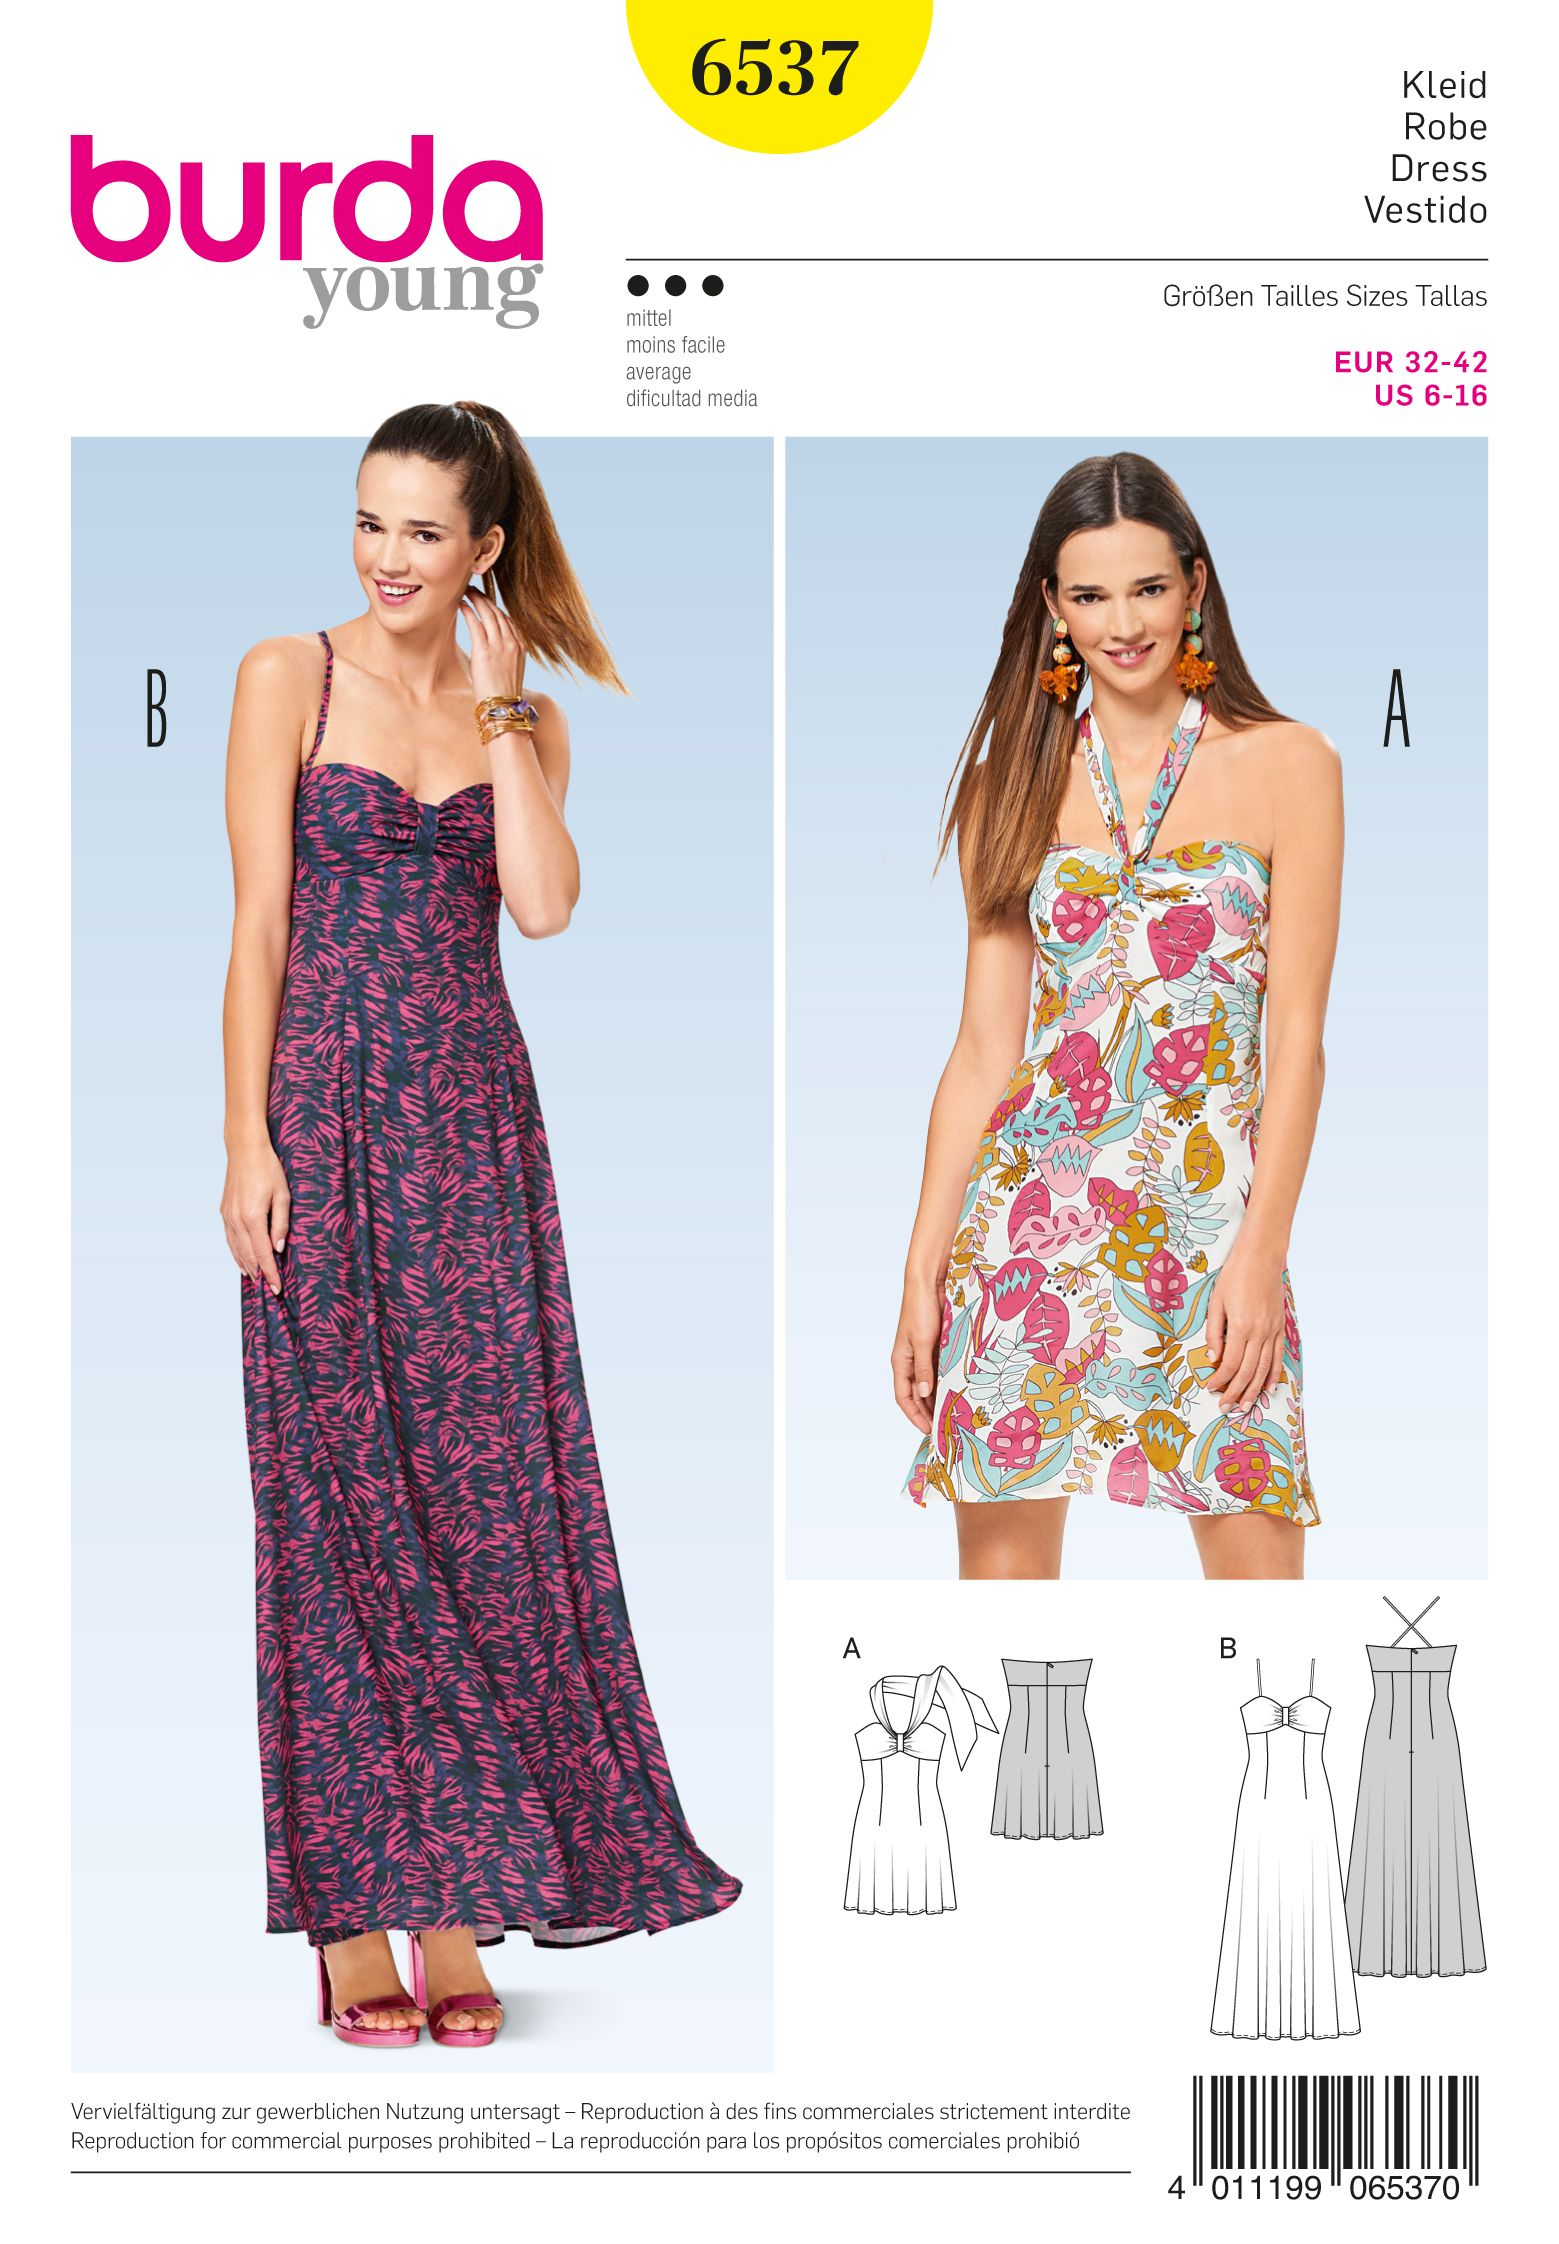 5007f02dd558 Purchase the Burda 6537 sewing pattern and read its pattern reviews. Find  other Dresses